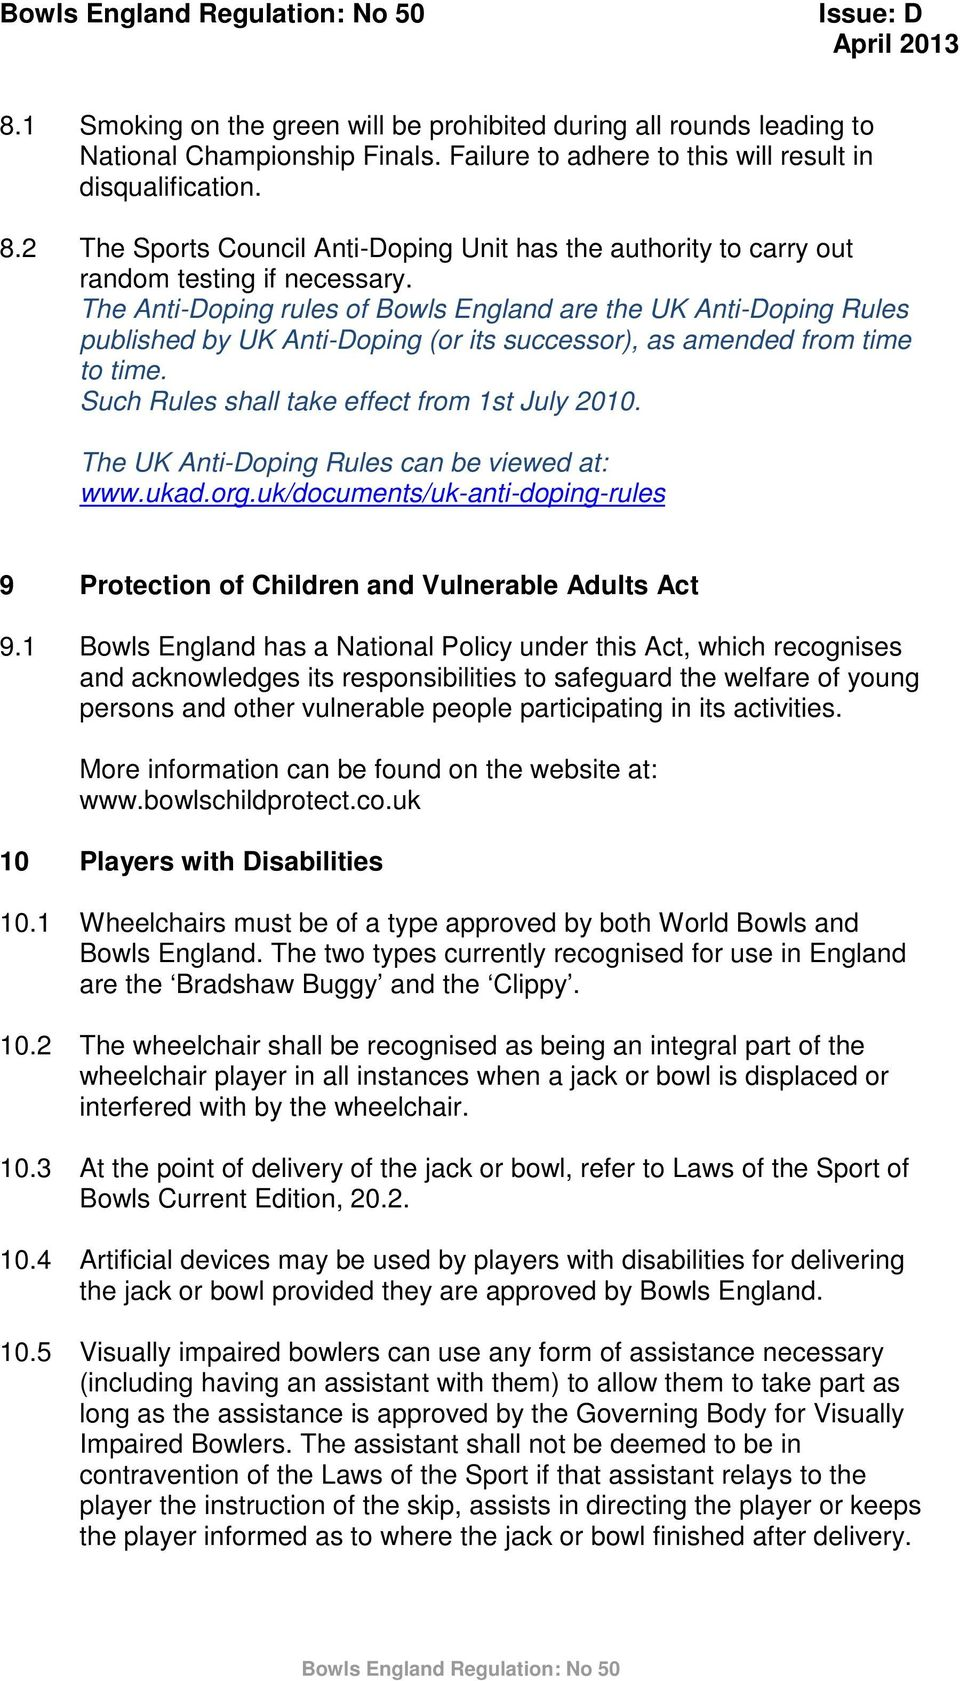 The Anti-Doping rules of Bowls England are the UK Anti-Doping Rules published by UK Anti-Doping (or its successor), as amended from time to time. Such Rules shall take effect from 1st July 2010.